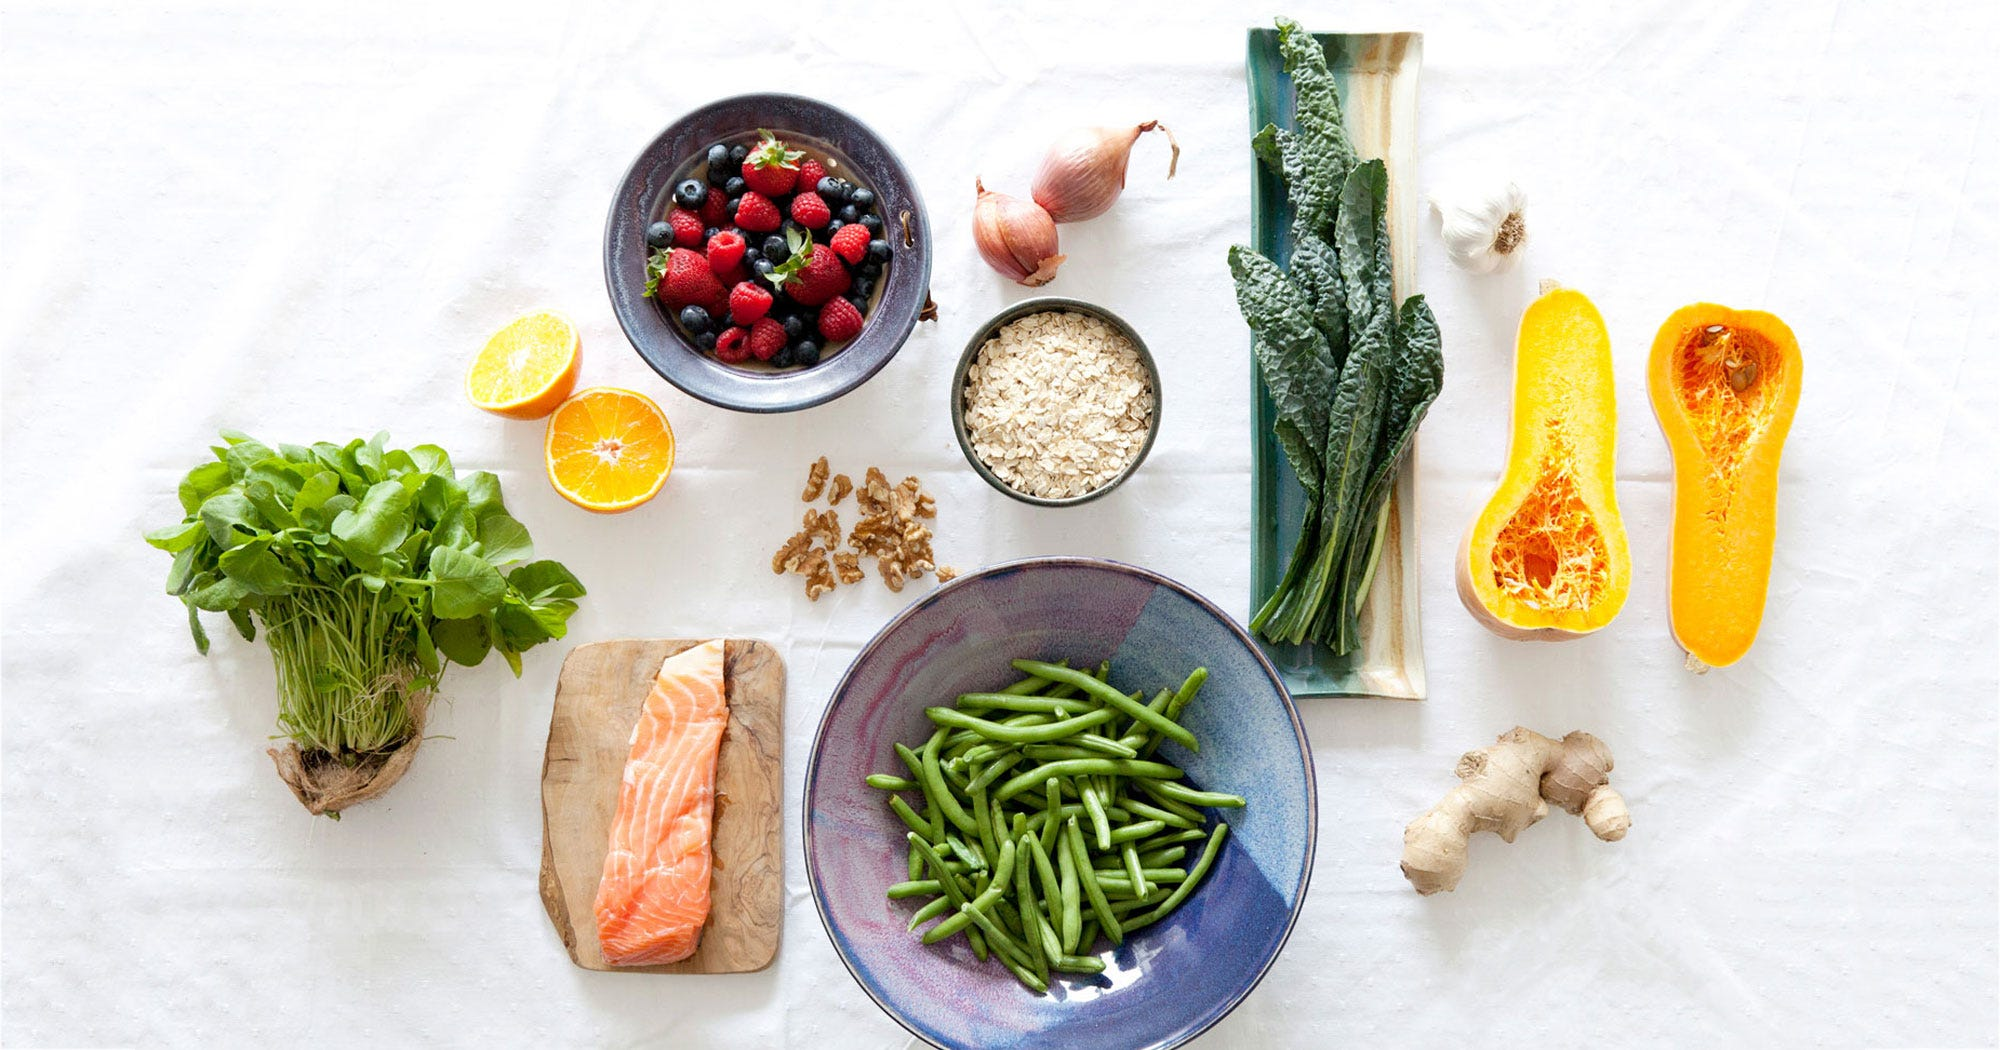 8 Foods To Help Boost Your Brainpower